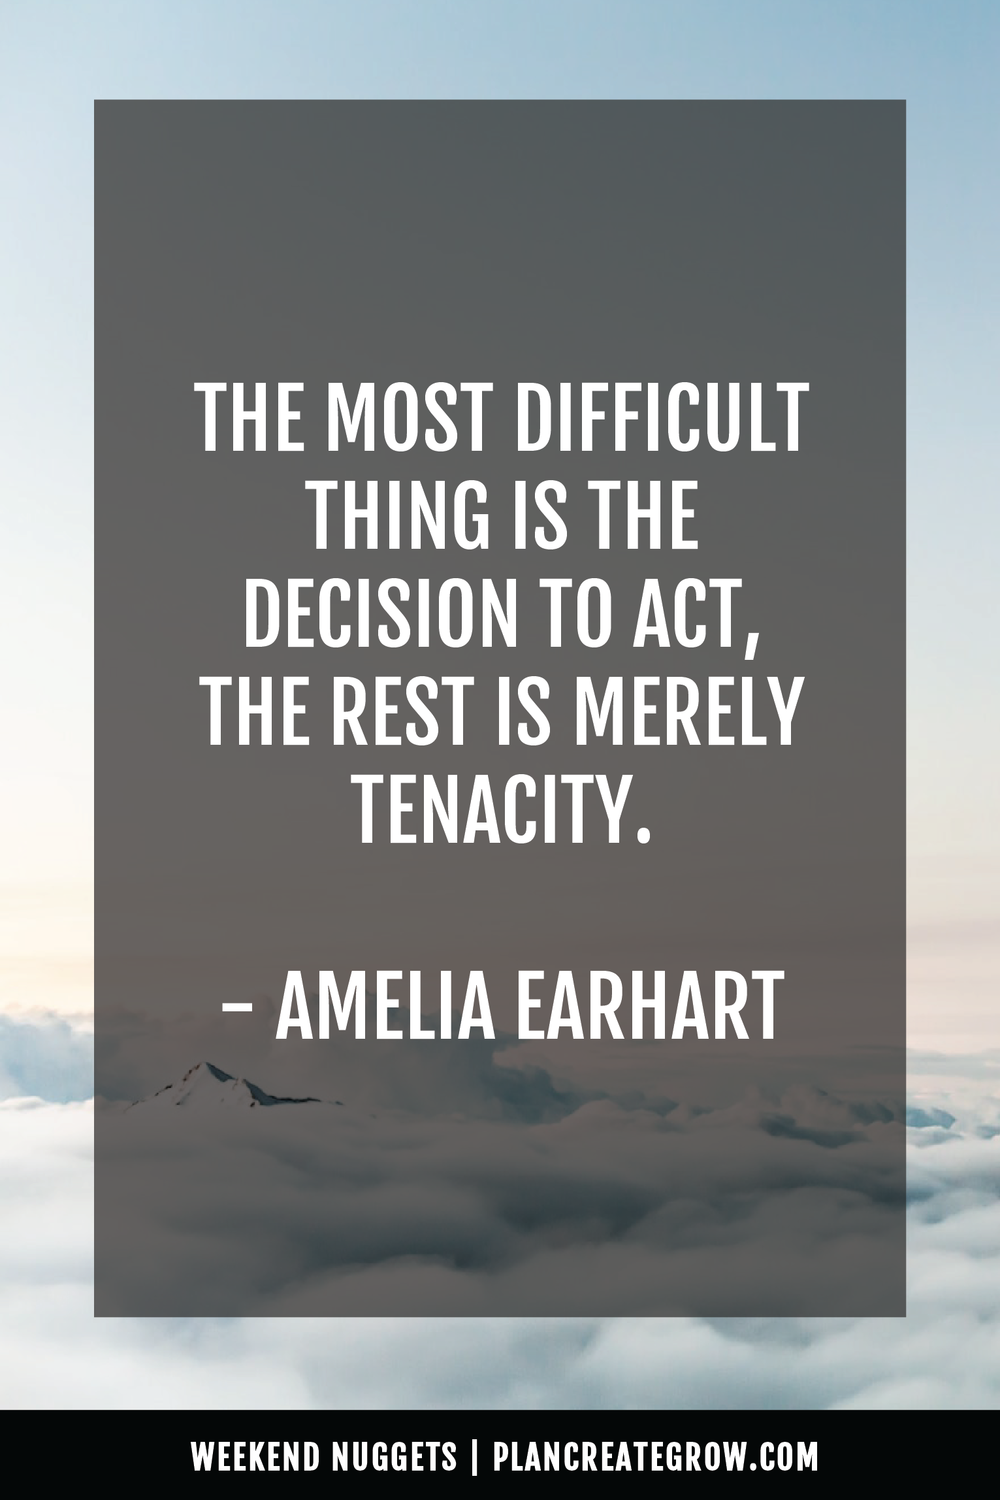 """The most difficult thing is the decision to act, the rest is merely tenacity."" - Amelia Earhart  This image forms part of a series called Weekend Nuggets - a collection of quotes and ideas curated to delight and inspire - shared each weekend. For more, visit plancreategrow.com/weekend-nuggets."